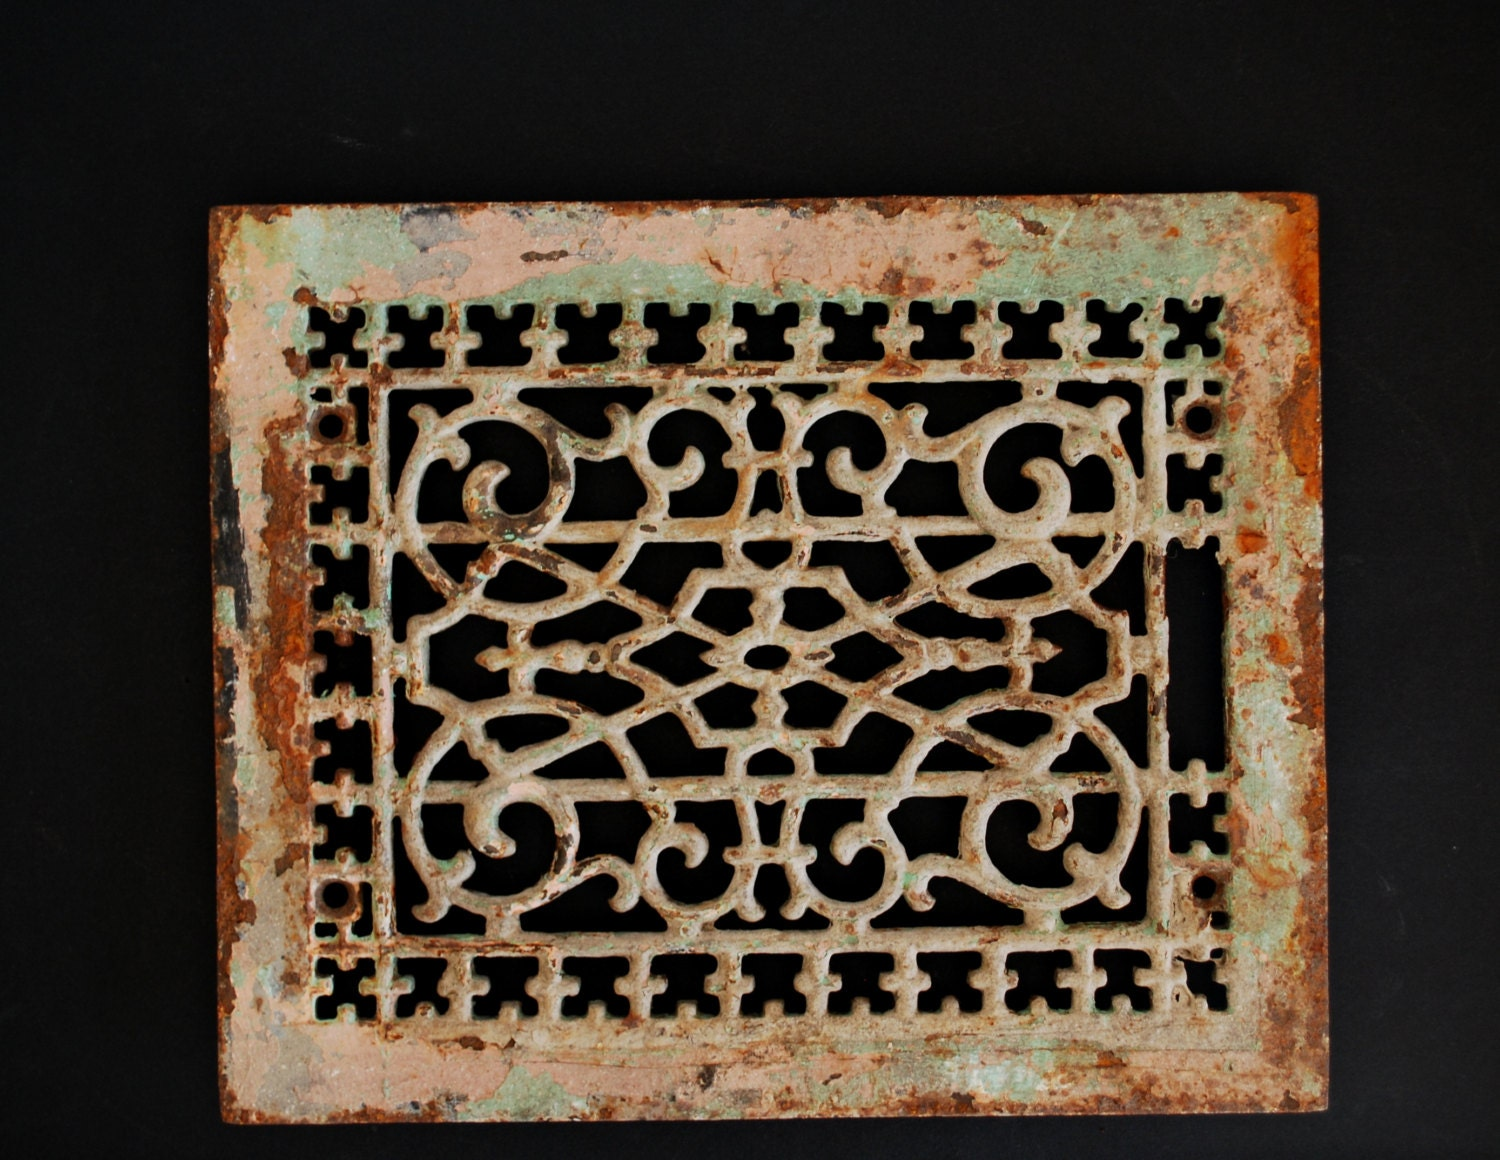 #B1490A Vintage Heating Vent Cover. Architectural Salvage Iron Best 3573 Heating Duct Covers photos with 1500x1160 px on helpvideos.info - Air Conditioners, Air Coolers and more